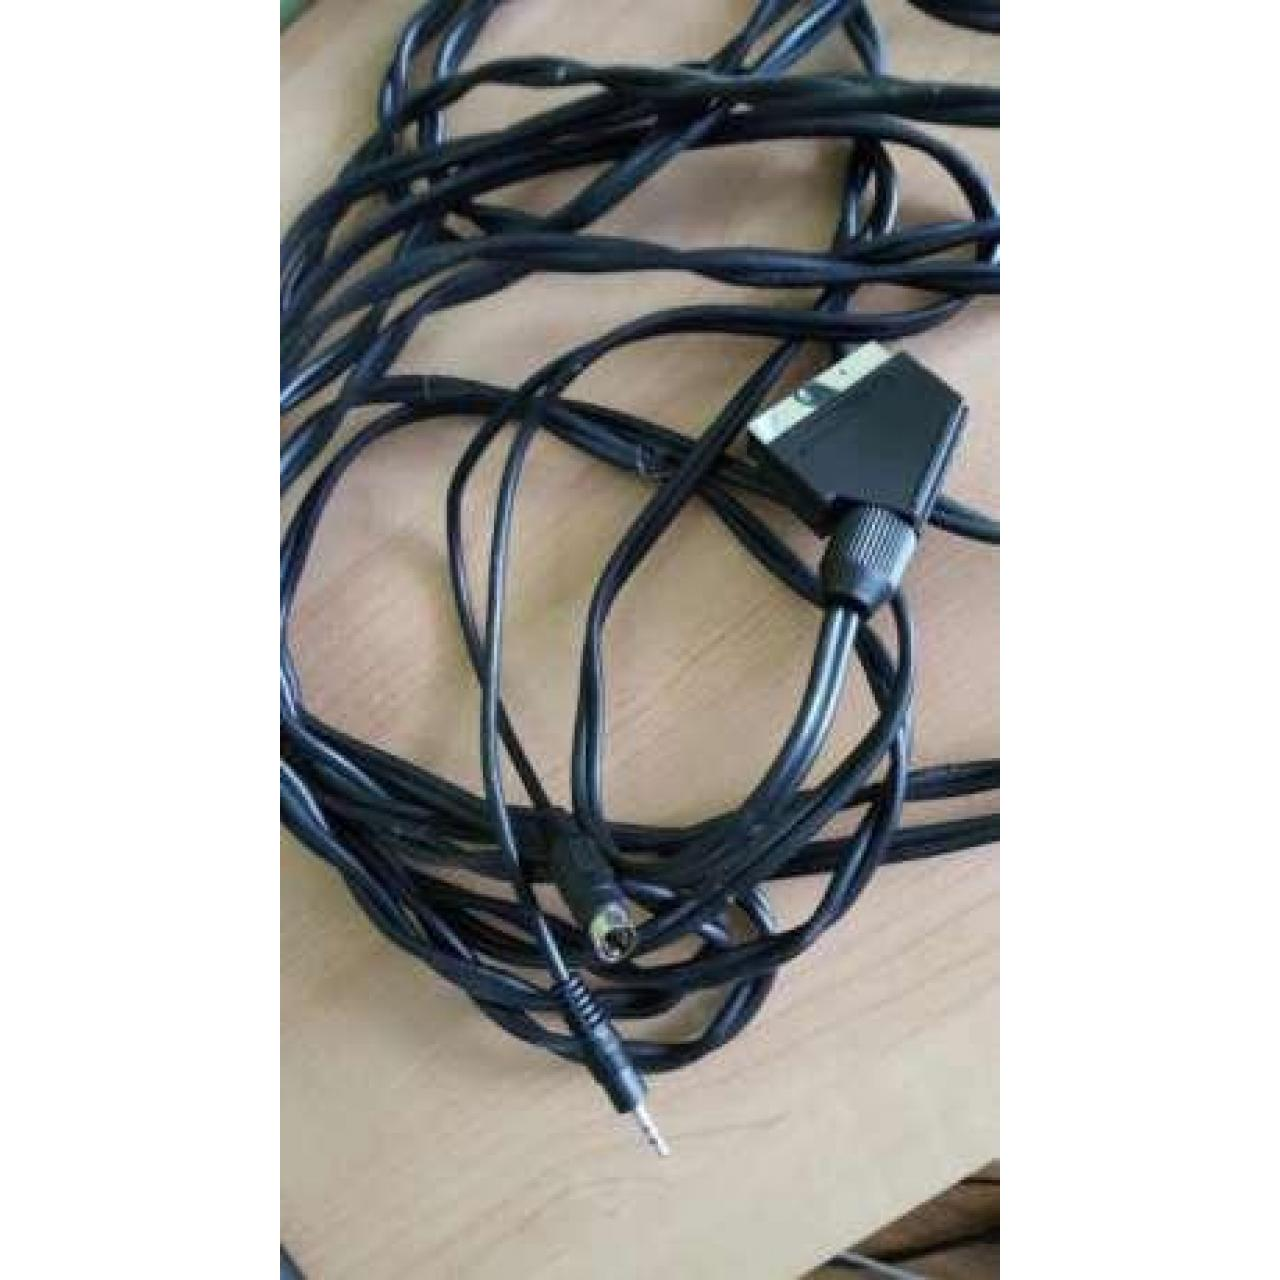 Kabel tv out s-video euro